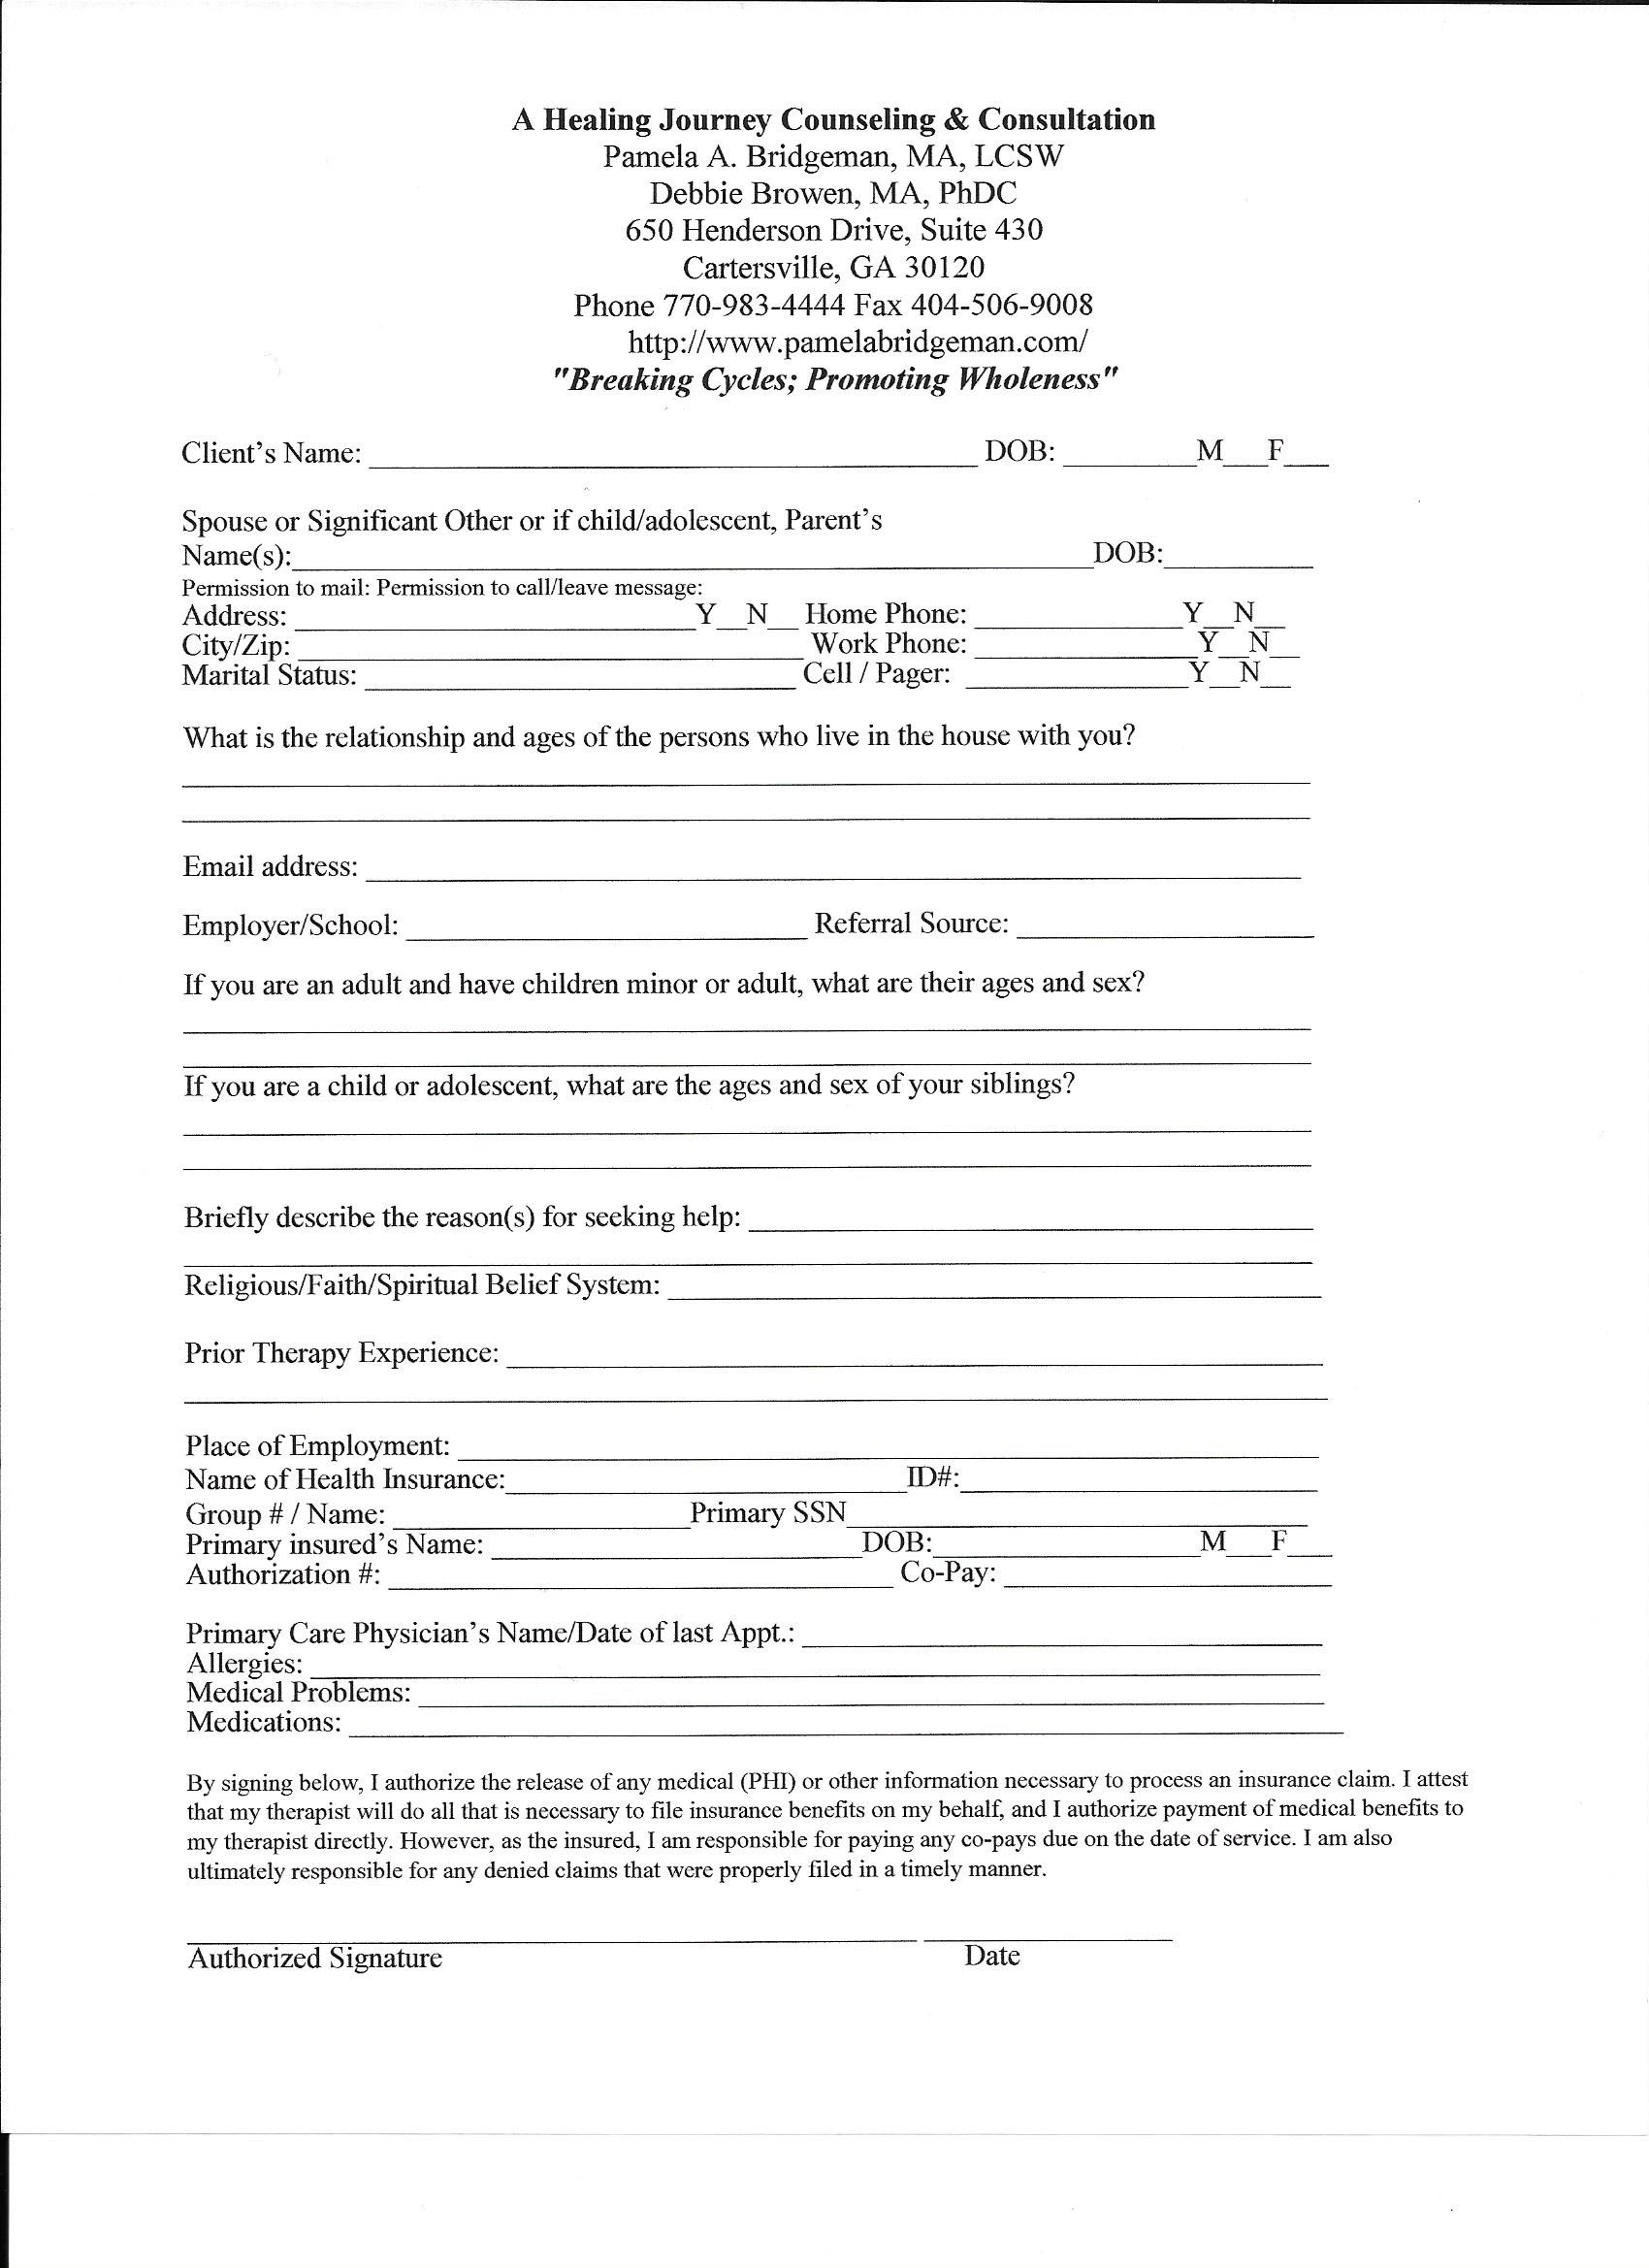 NEW CONSENT FORM FOR COUNSELING